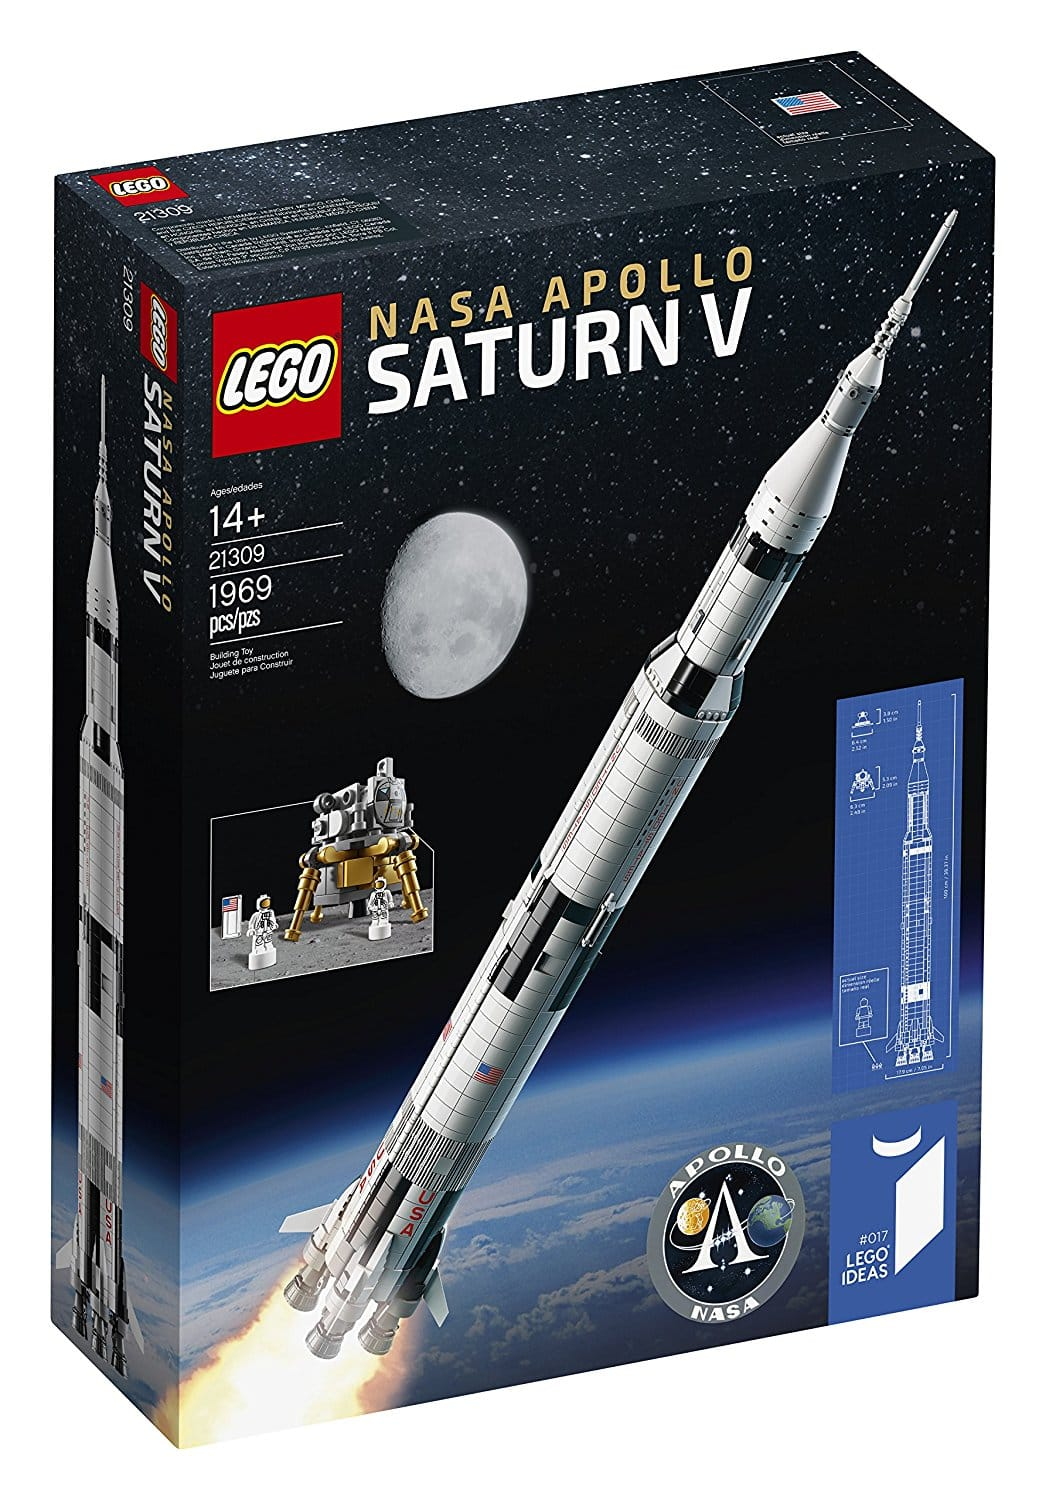 LEGO Ideas Nasa Apollo Saturn V 21309 Building Kit $120